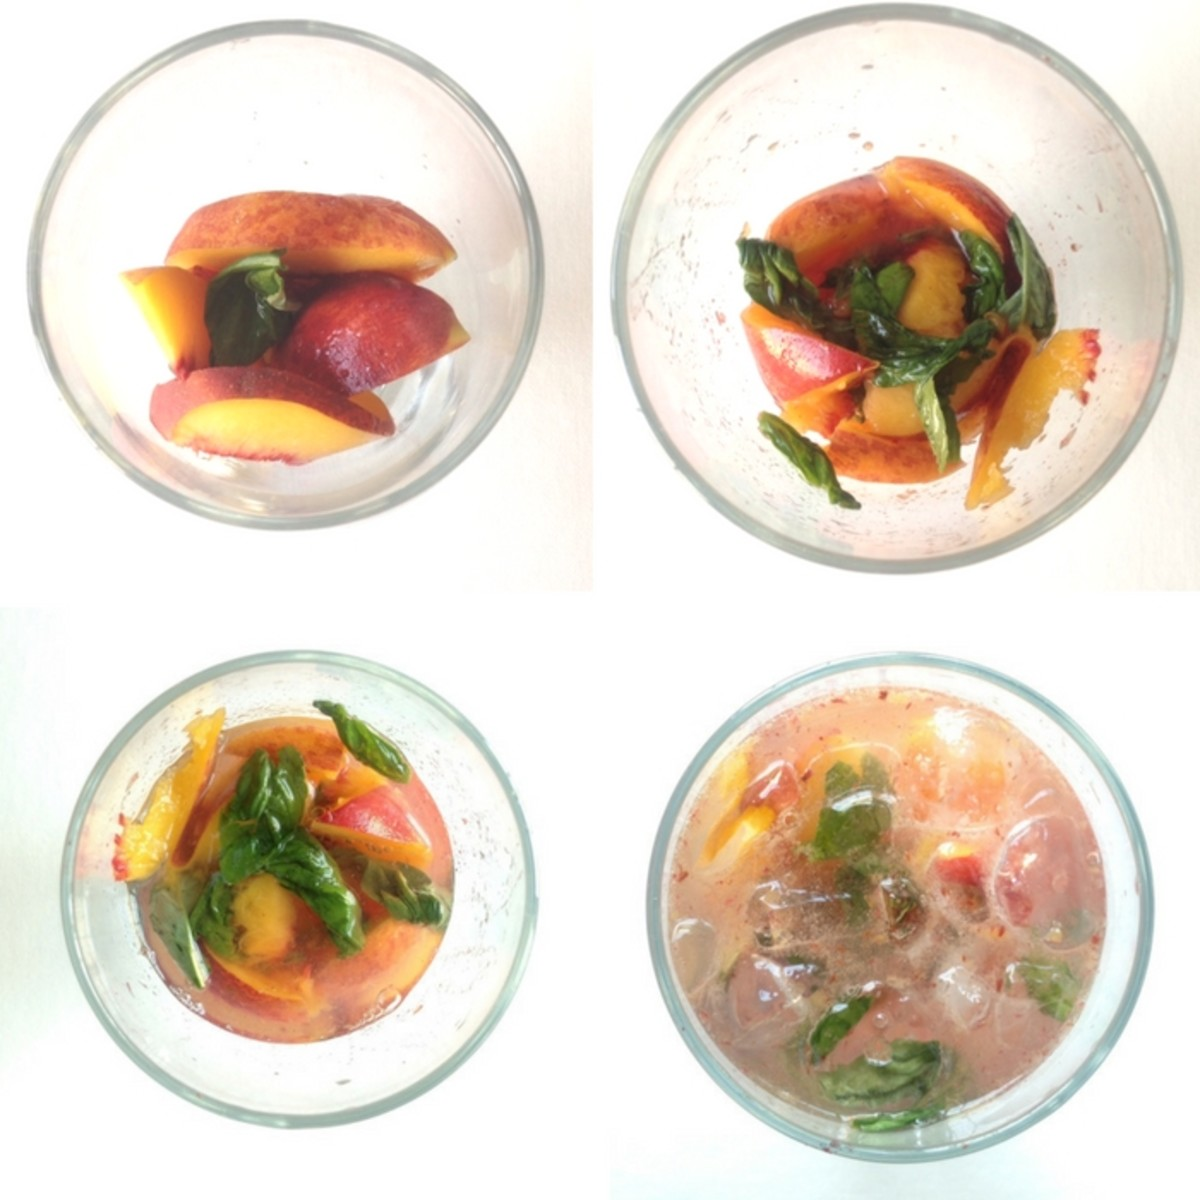 Peach Cocktail steps